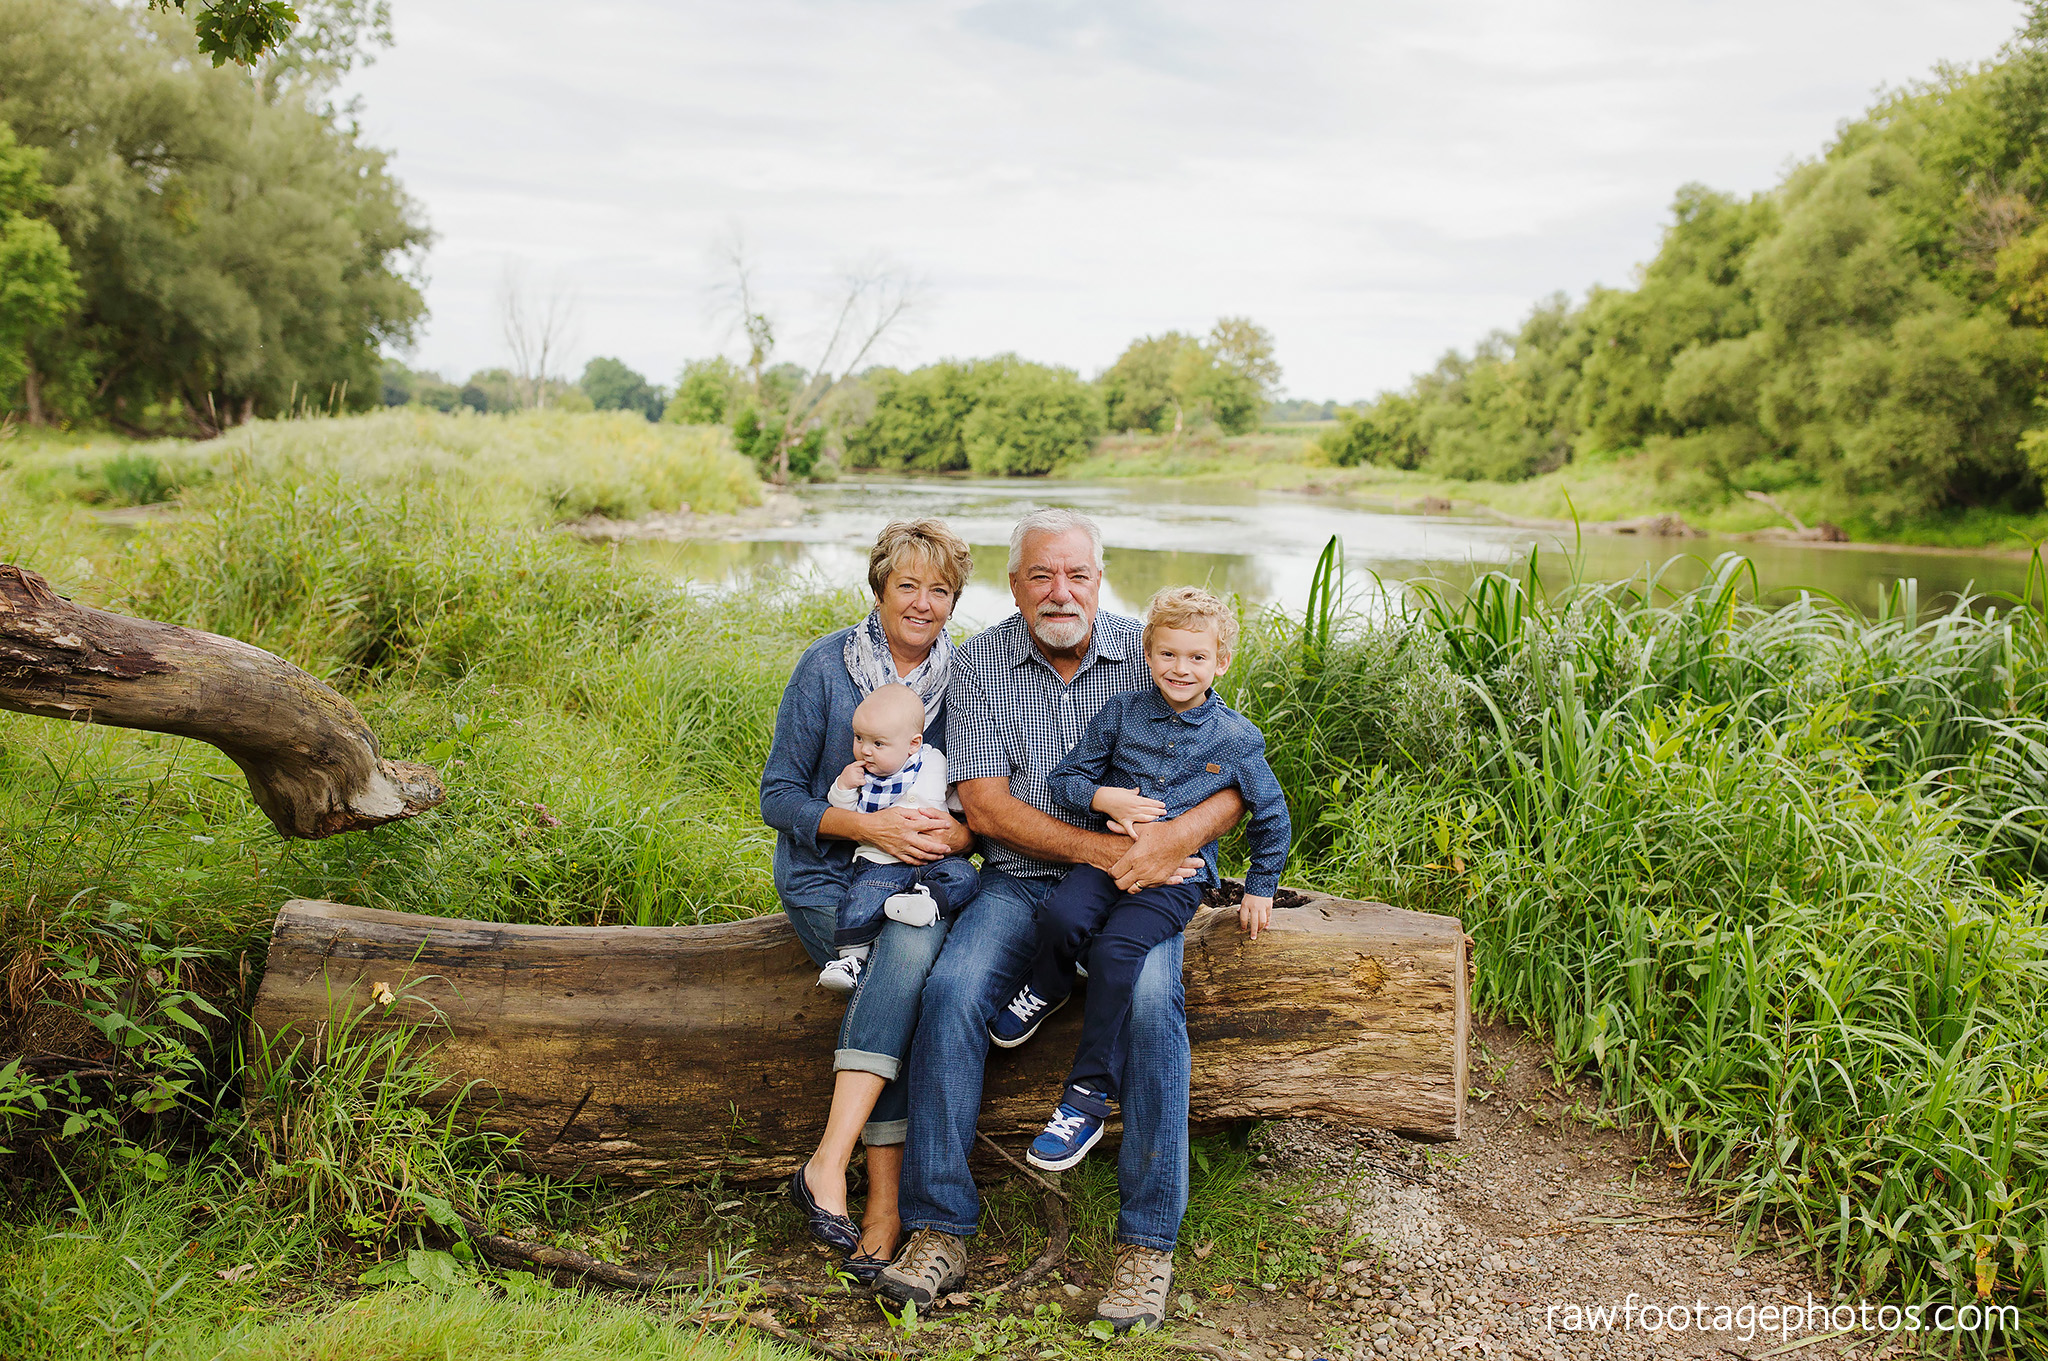 london_ontario_extended_family_photographer-raw_footage_photography006.jpg